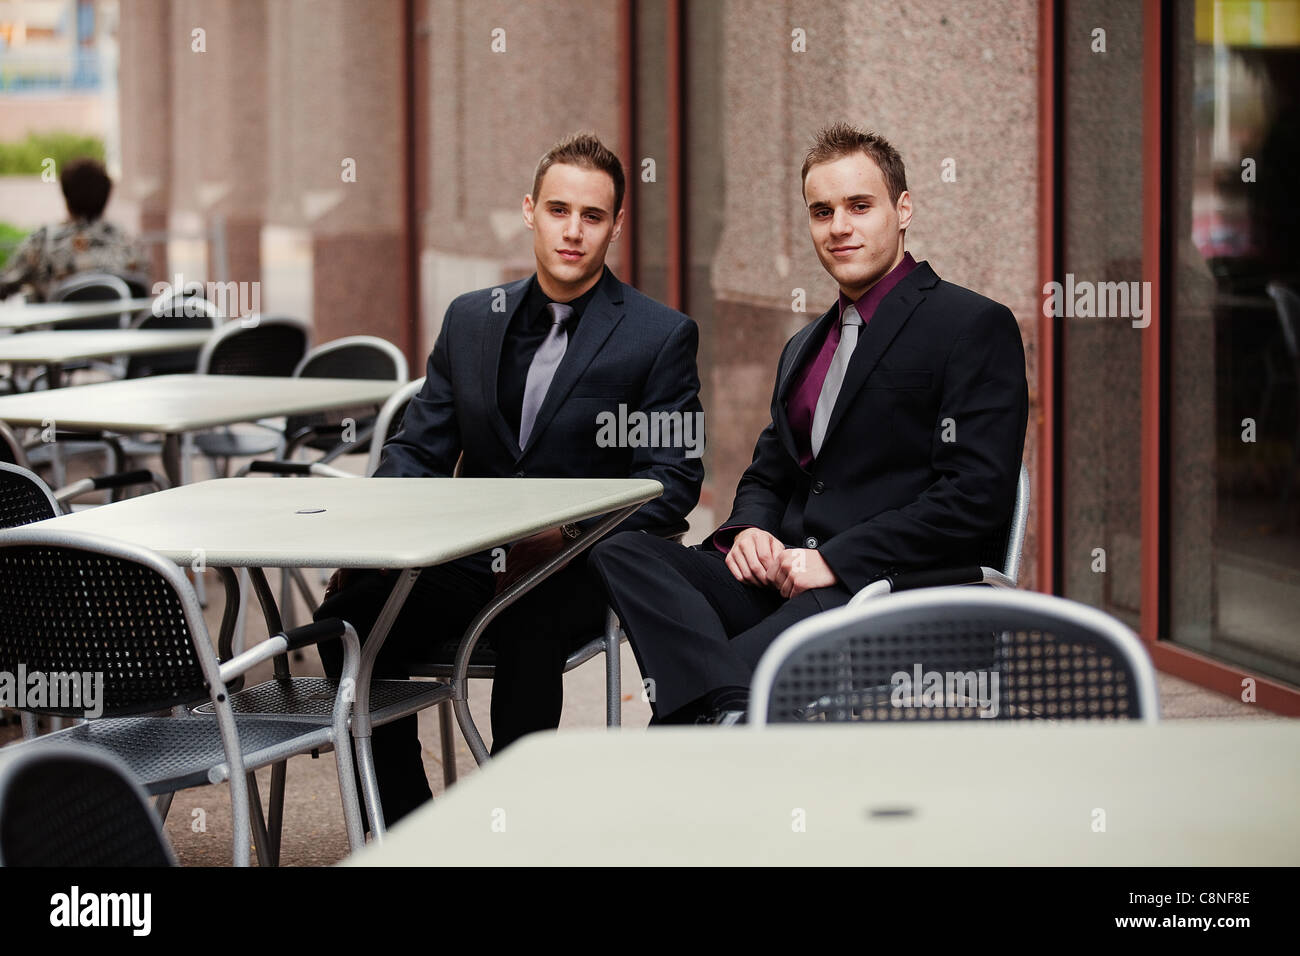 Wide view of two sharp dressed young businessmen at an outdoor cafe in a downtown metropolitan area. Stock Photo